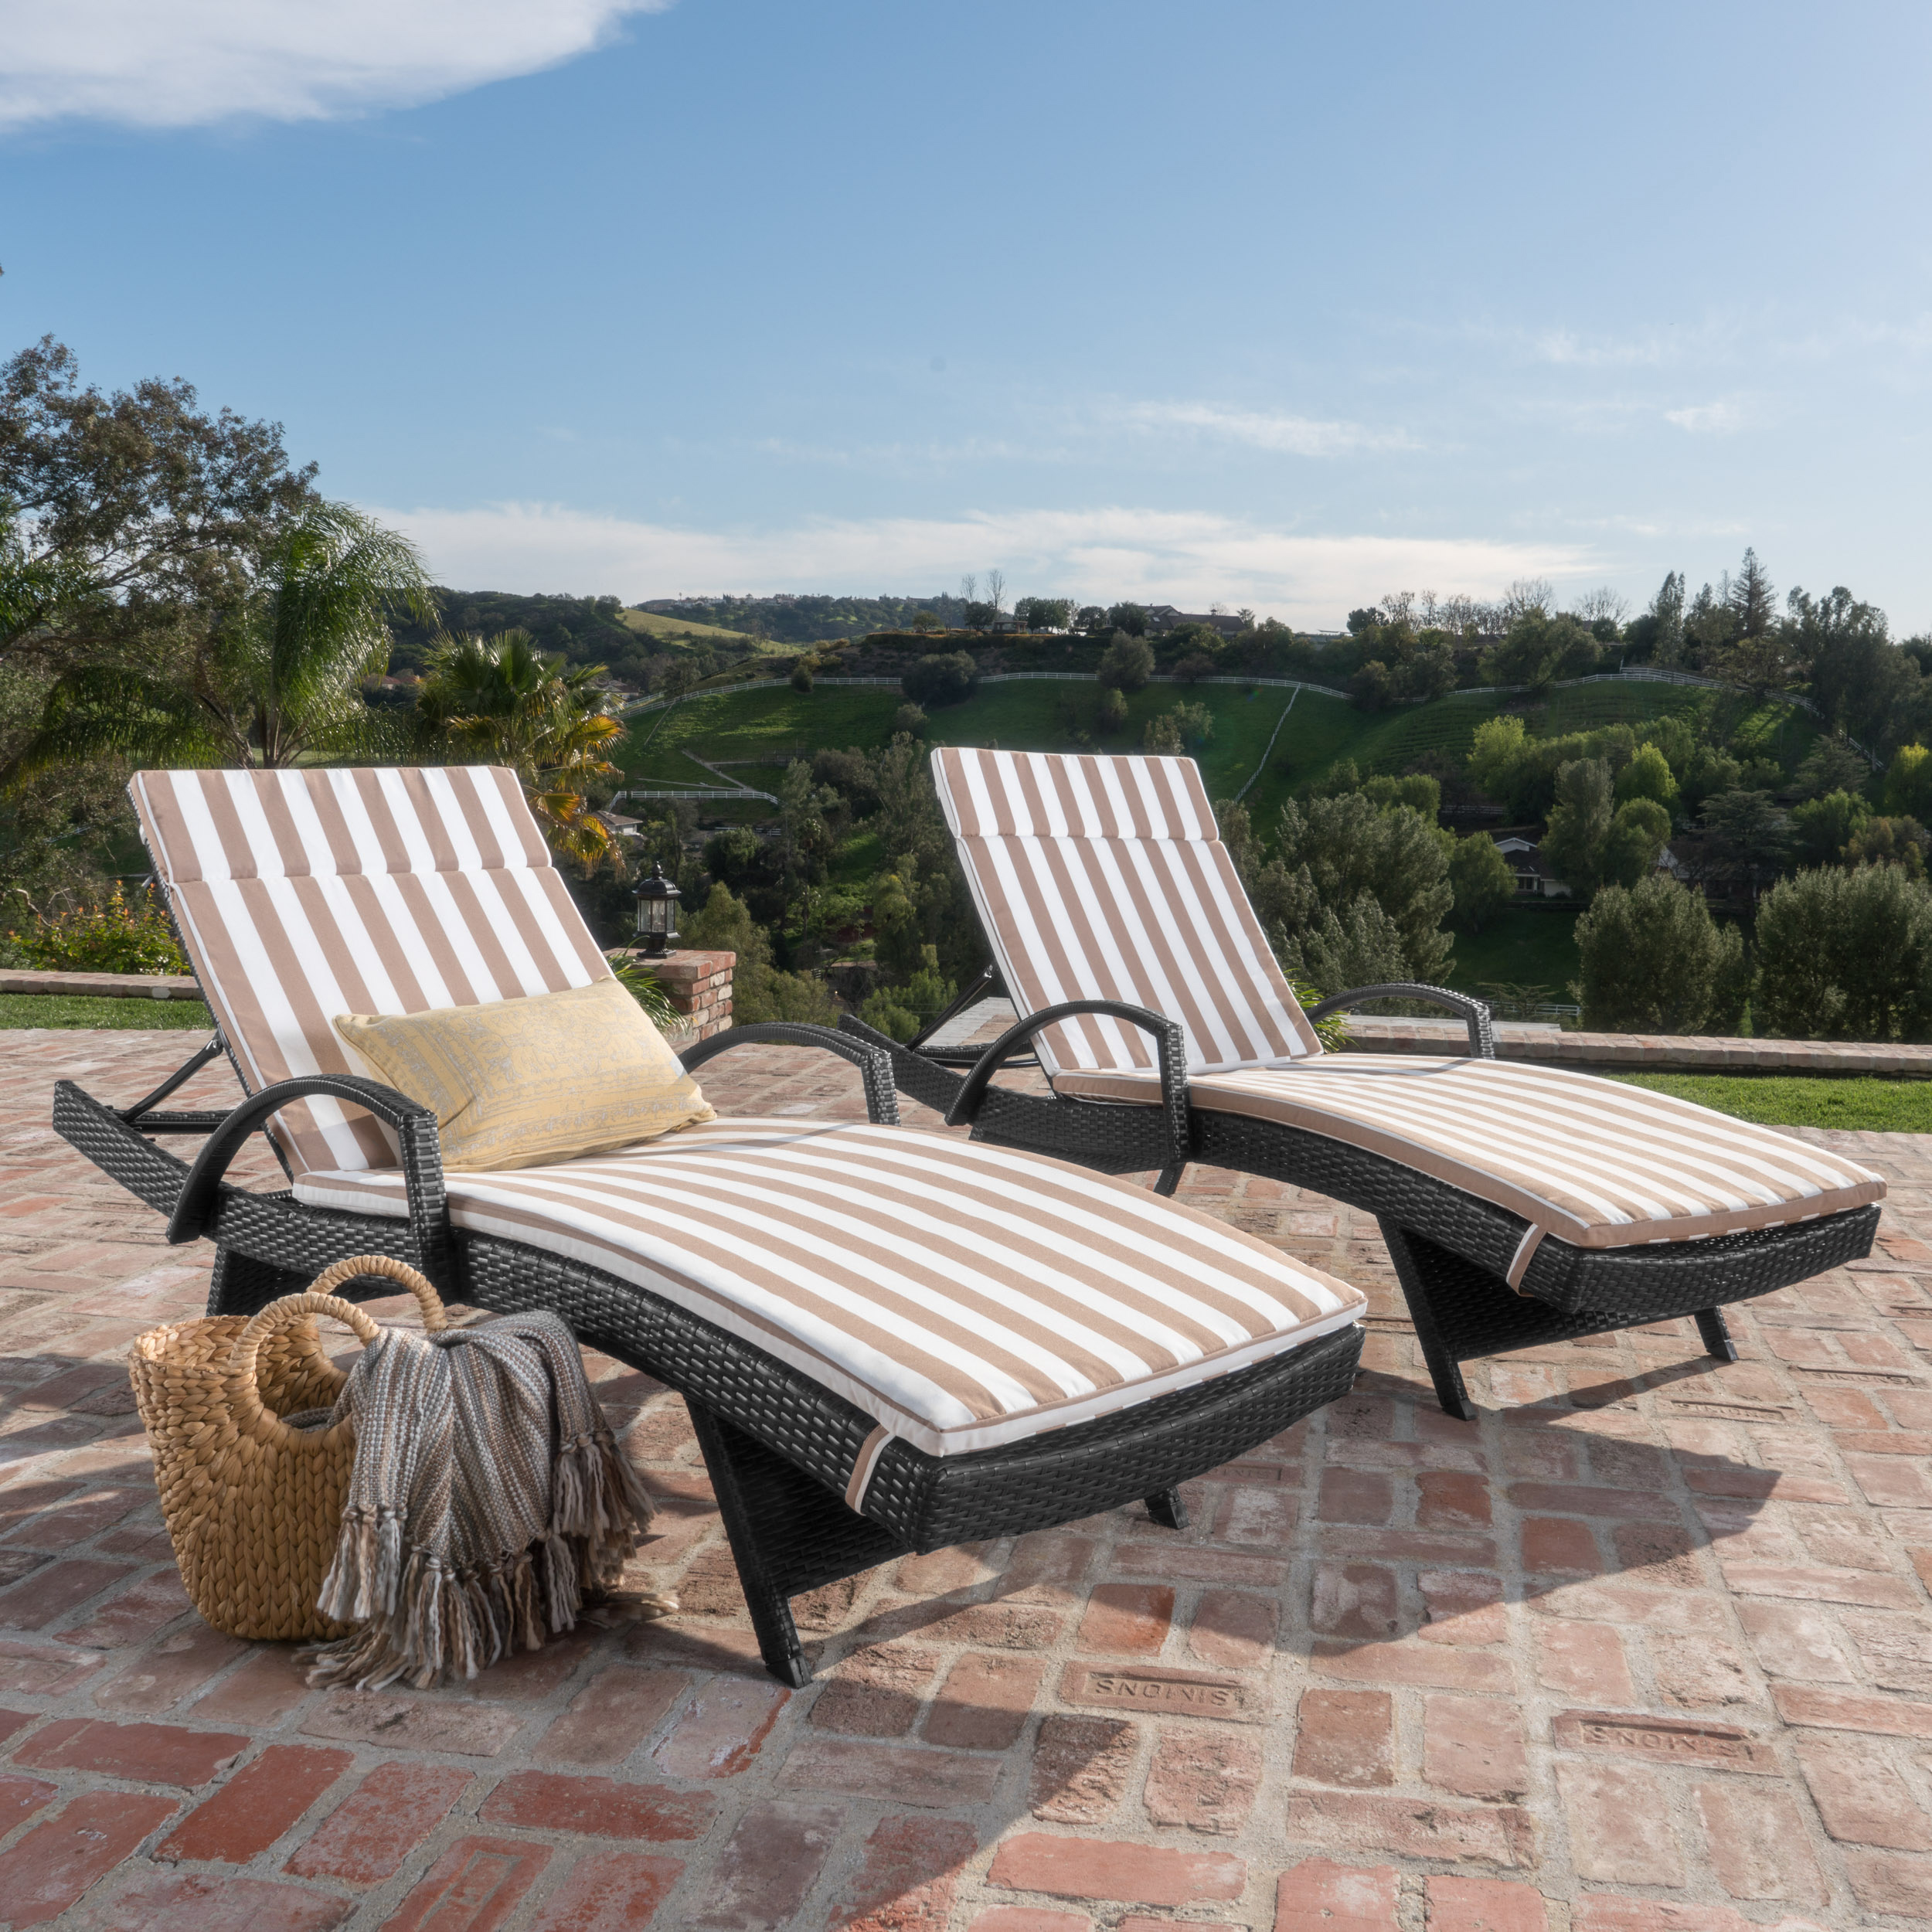 Soleil Outdoor Wicker Chaise Lounges w/ Water Resistant Cushions (Set of 2) (1)